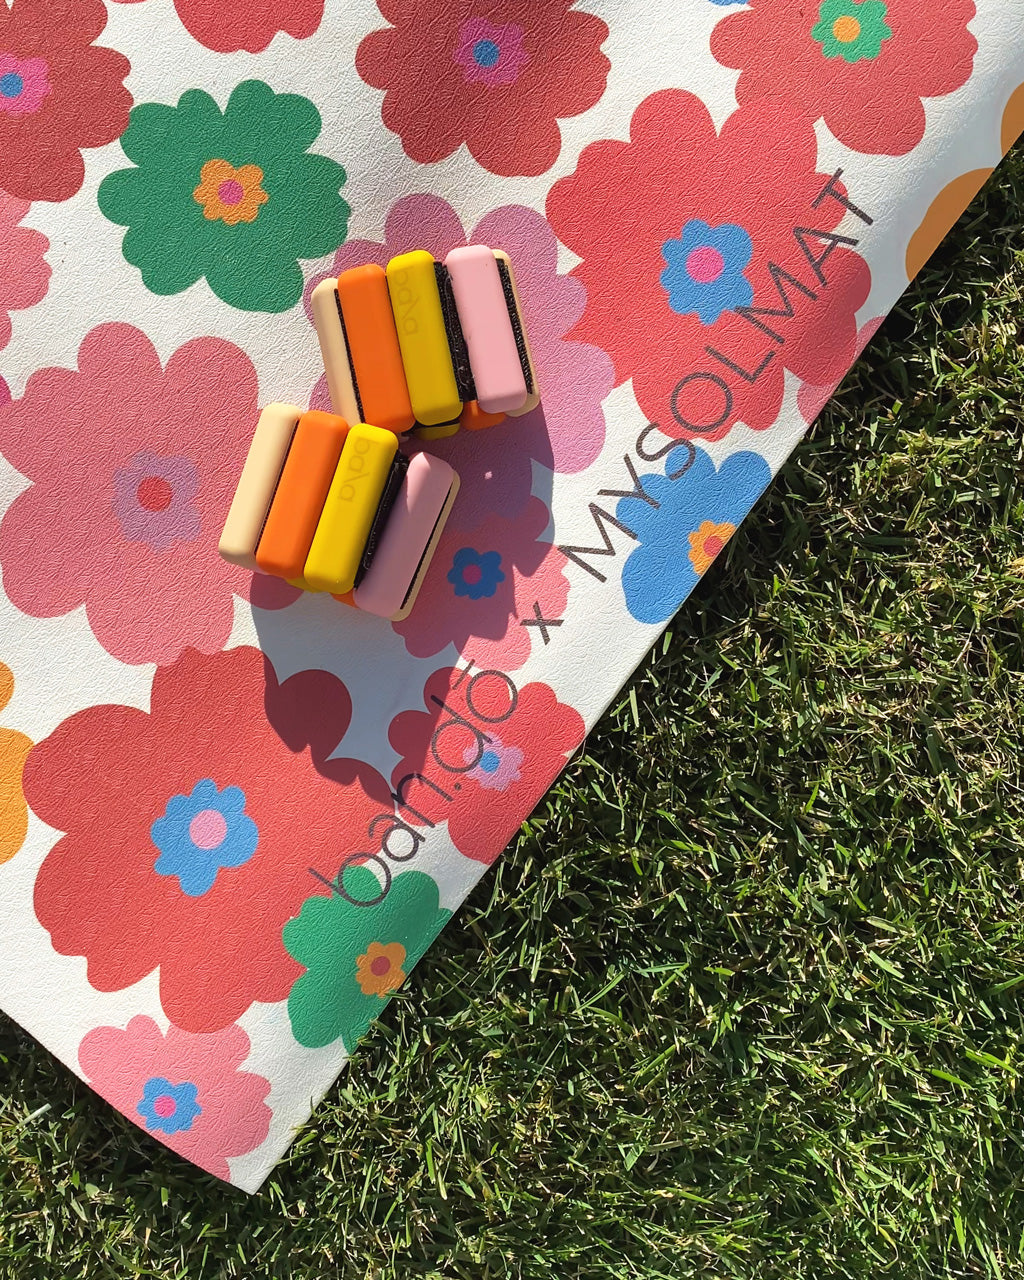 exercise mat with multi-colored, all-over daisy pattern shown with 2 multi-colored Bala ankle weights on grass background